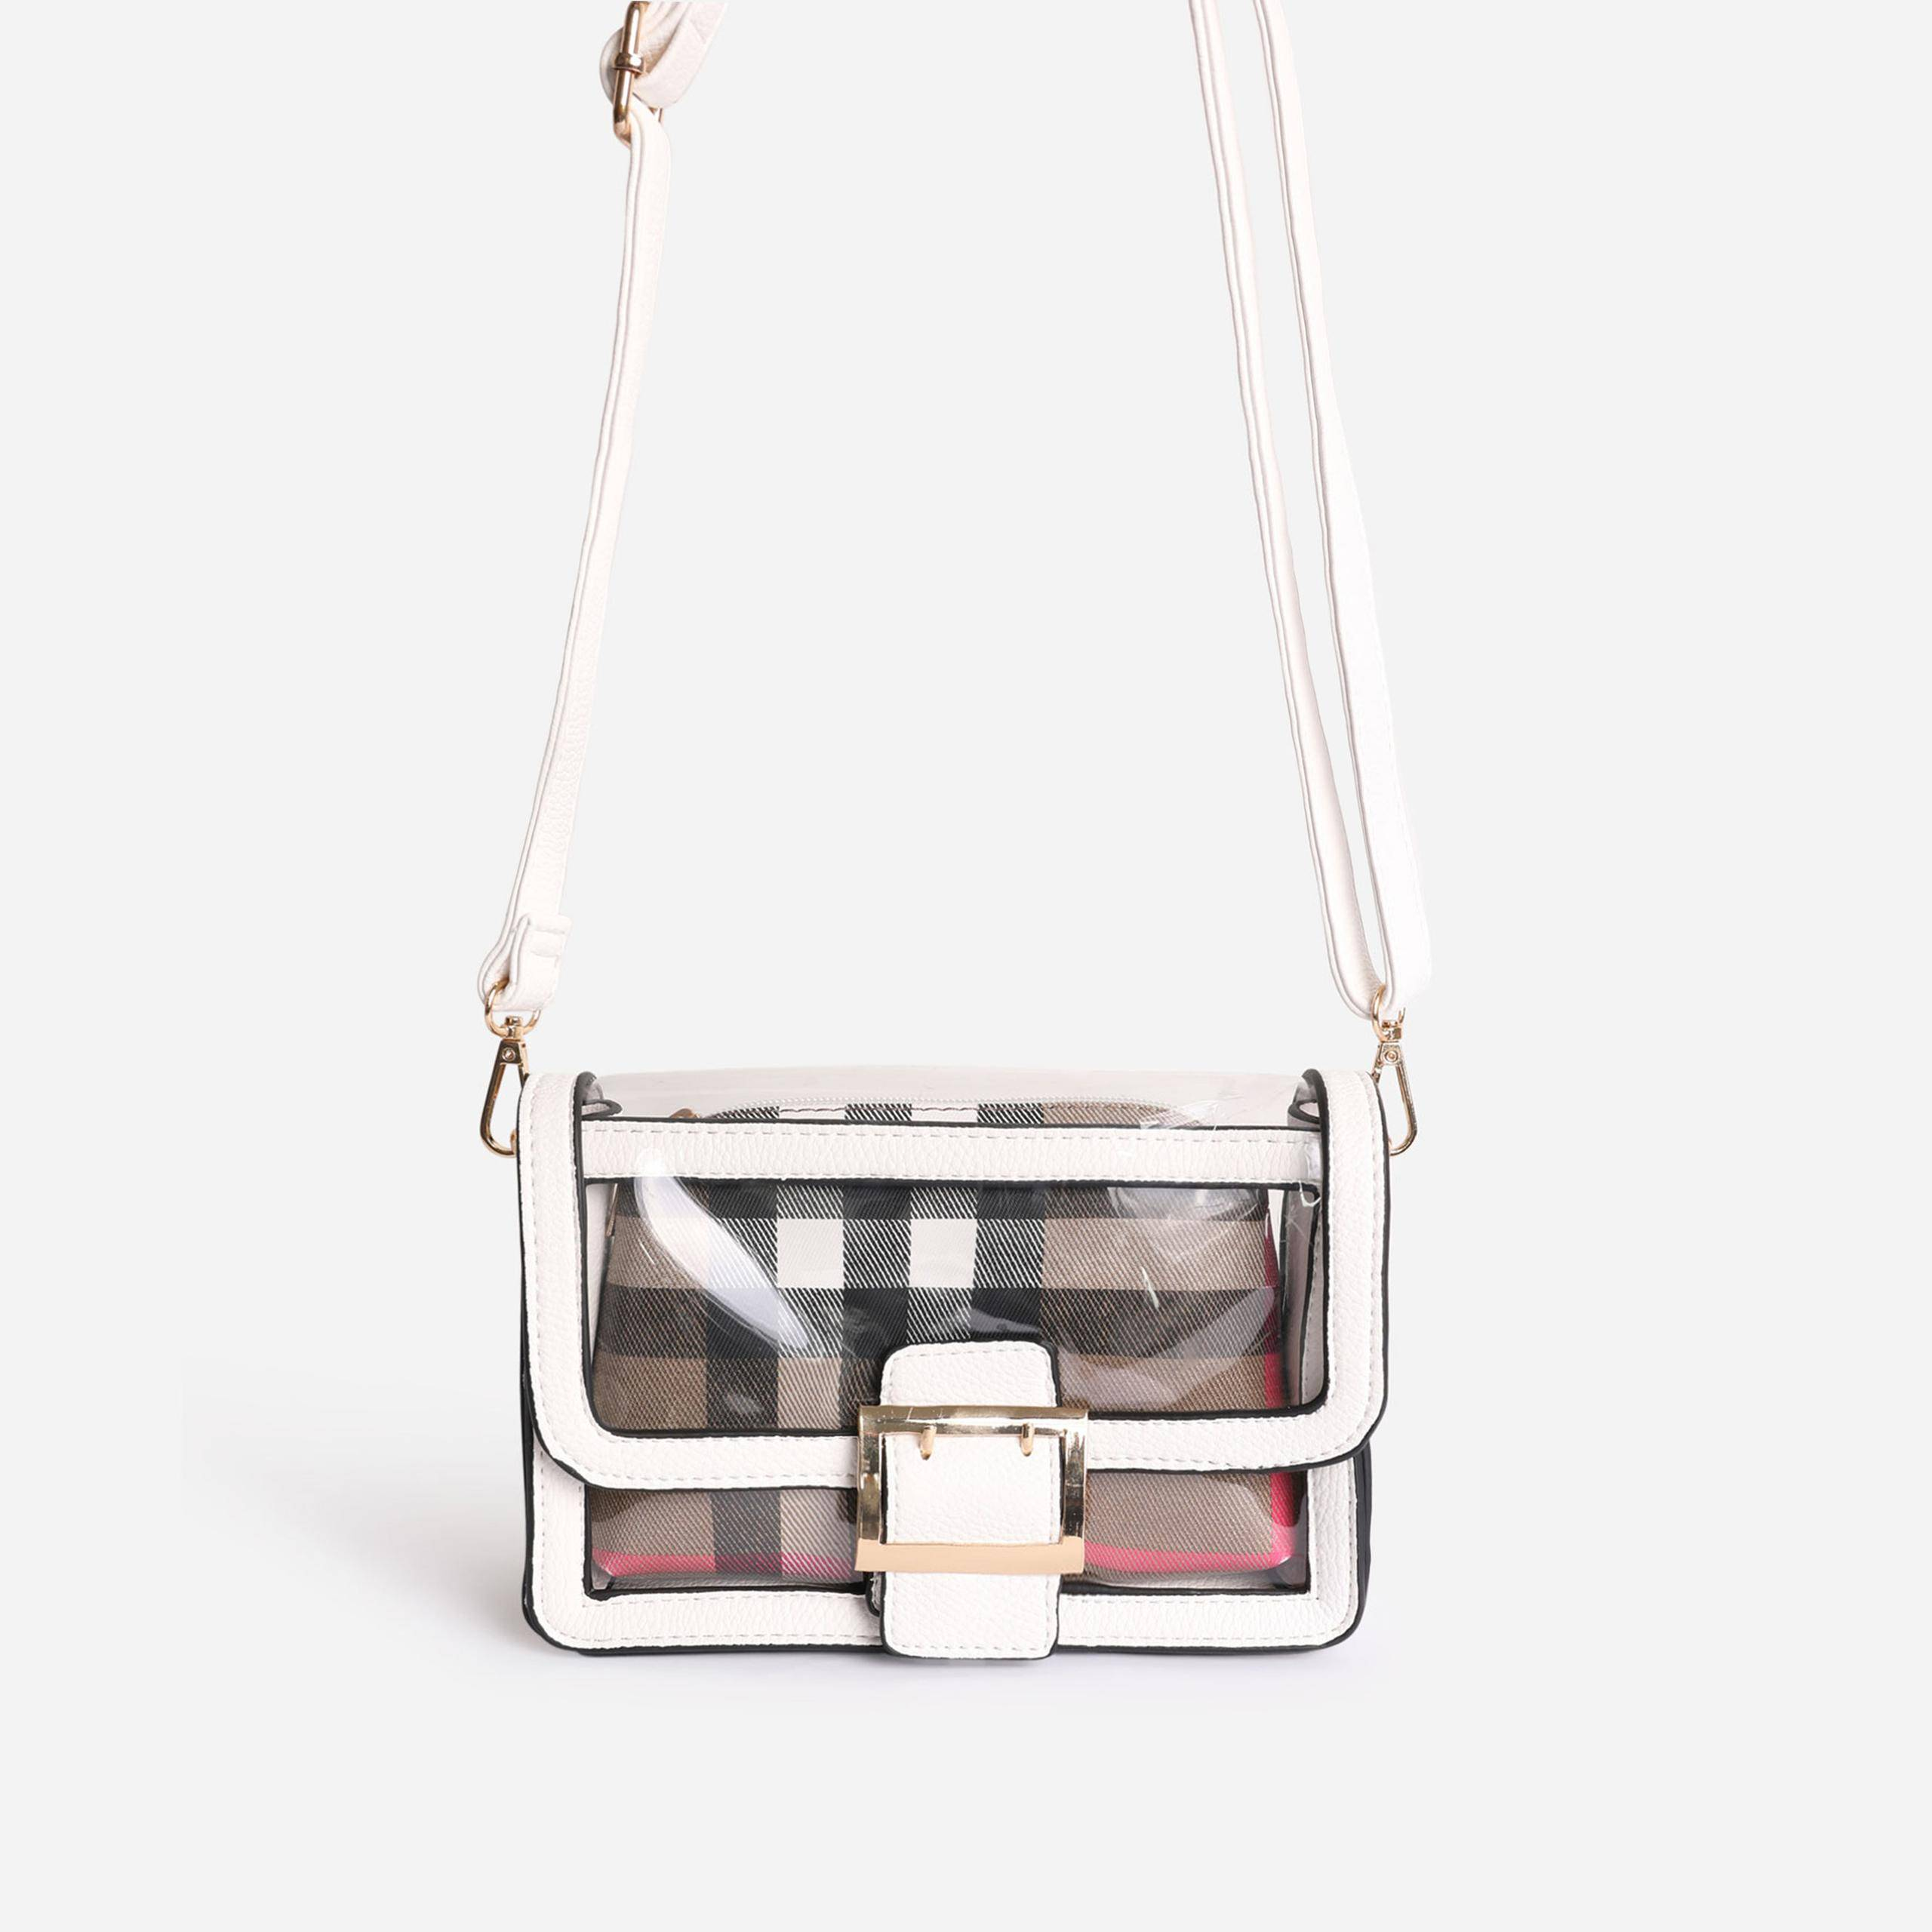 EGO Check Print Detail Perspex Cross Body Bag in White Faux Leather,, White  - female - Size: One Size